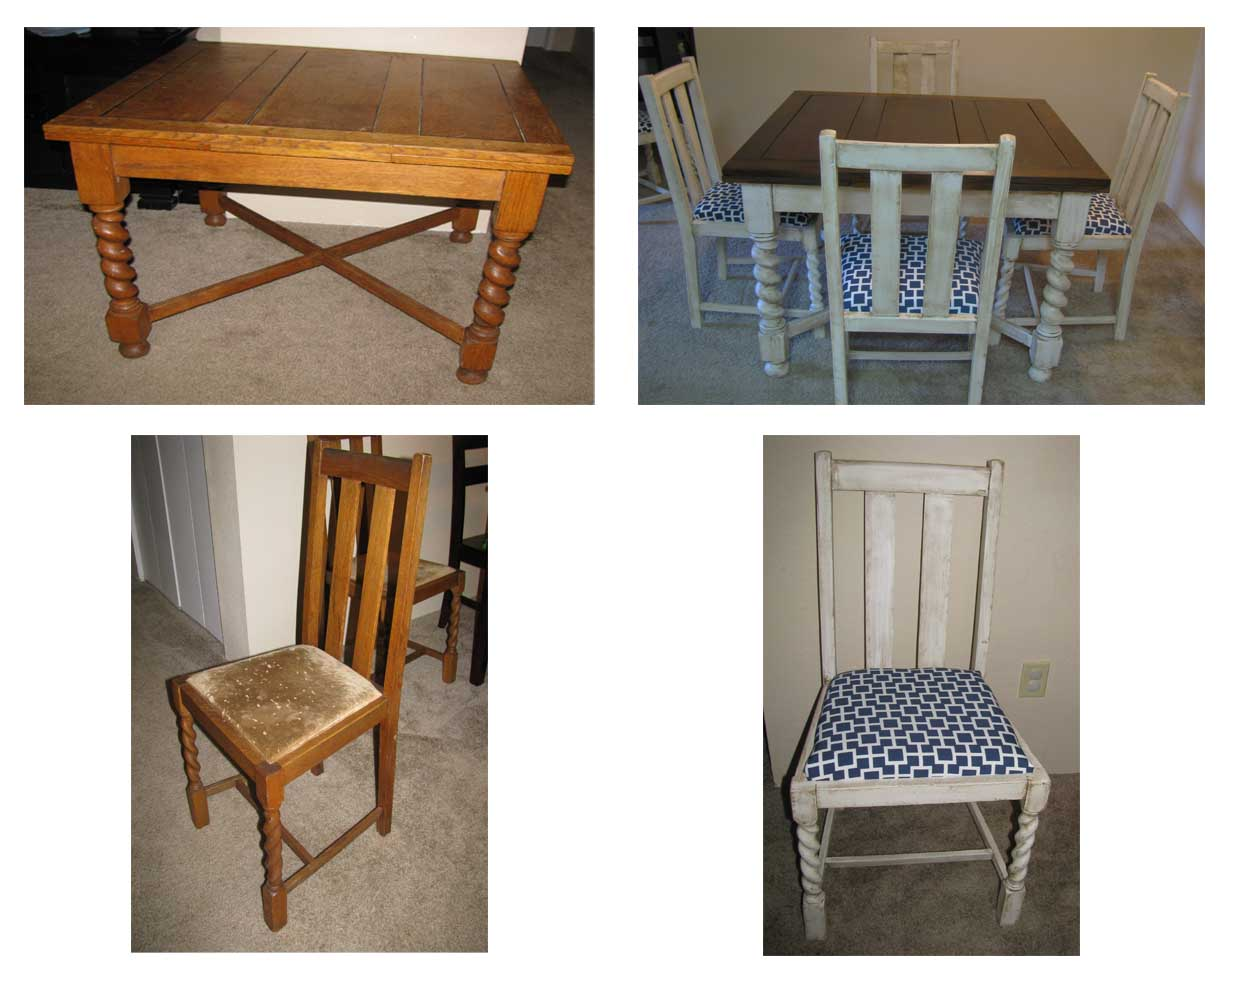 1000 images about antique furniture restoration ideas on pinterest how to spray paint cane - Furniture restoration ideas ...